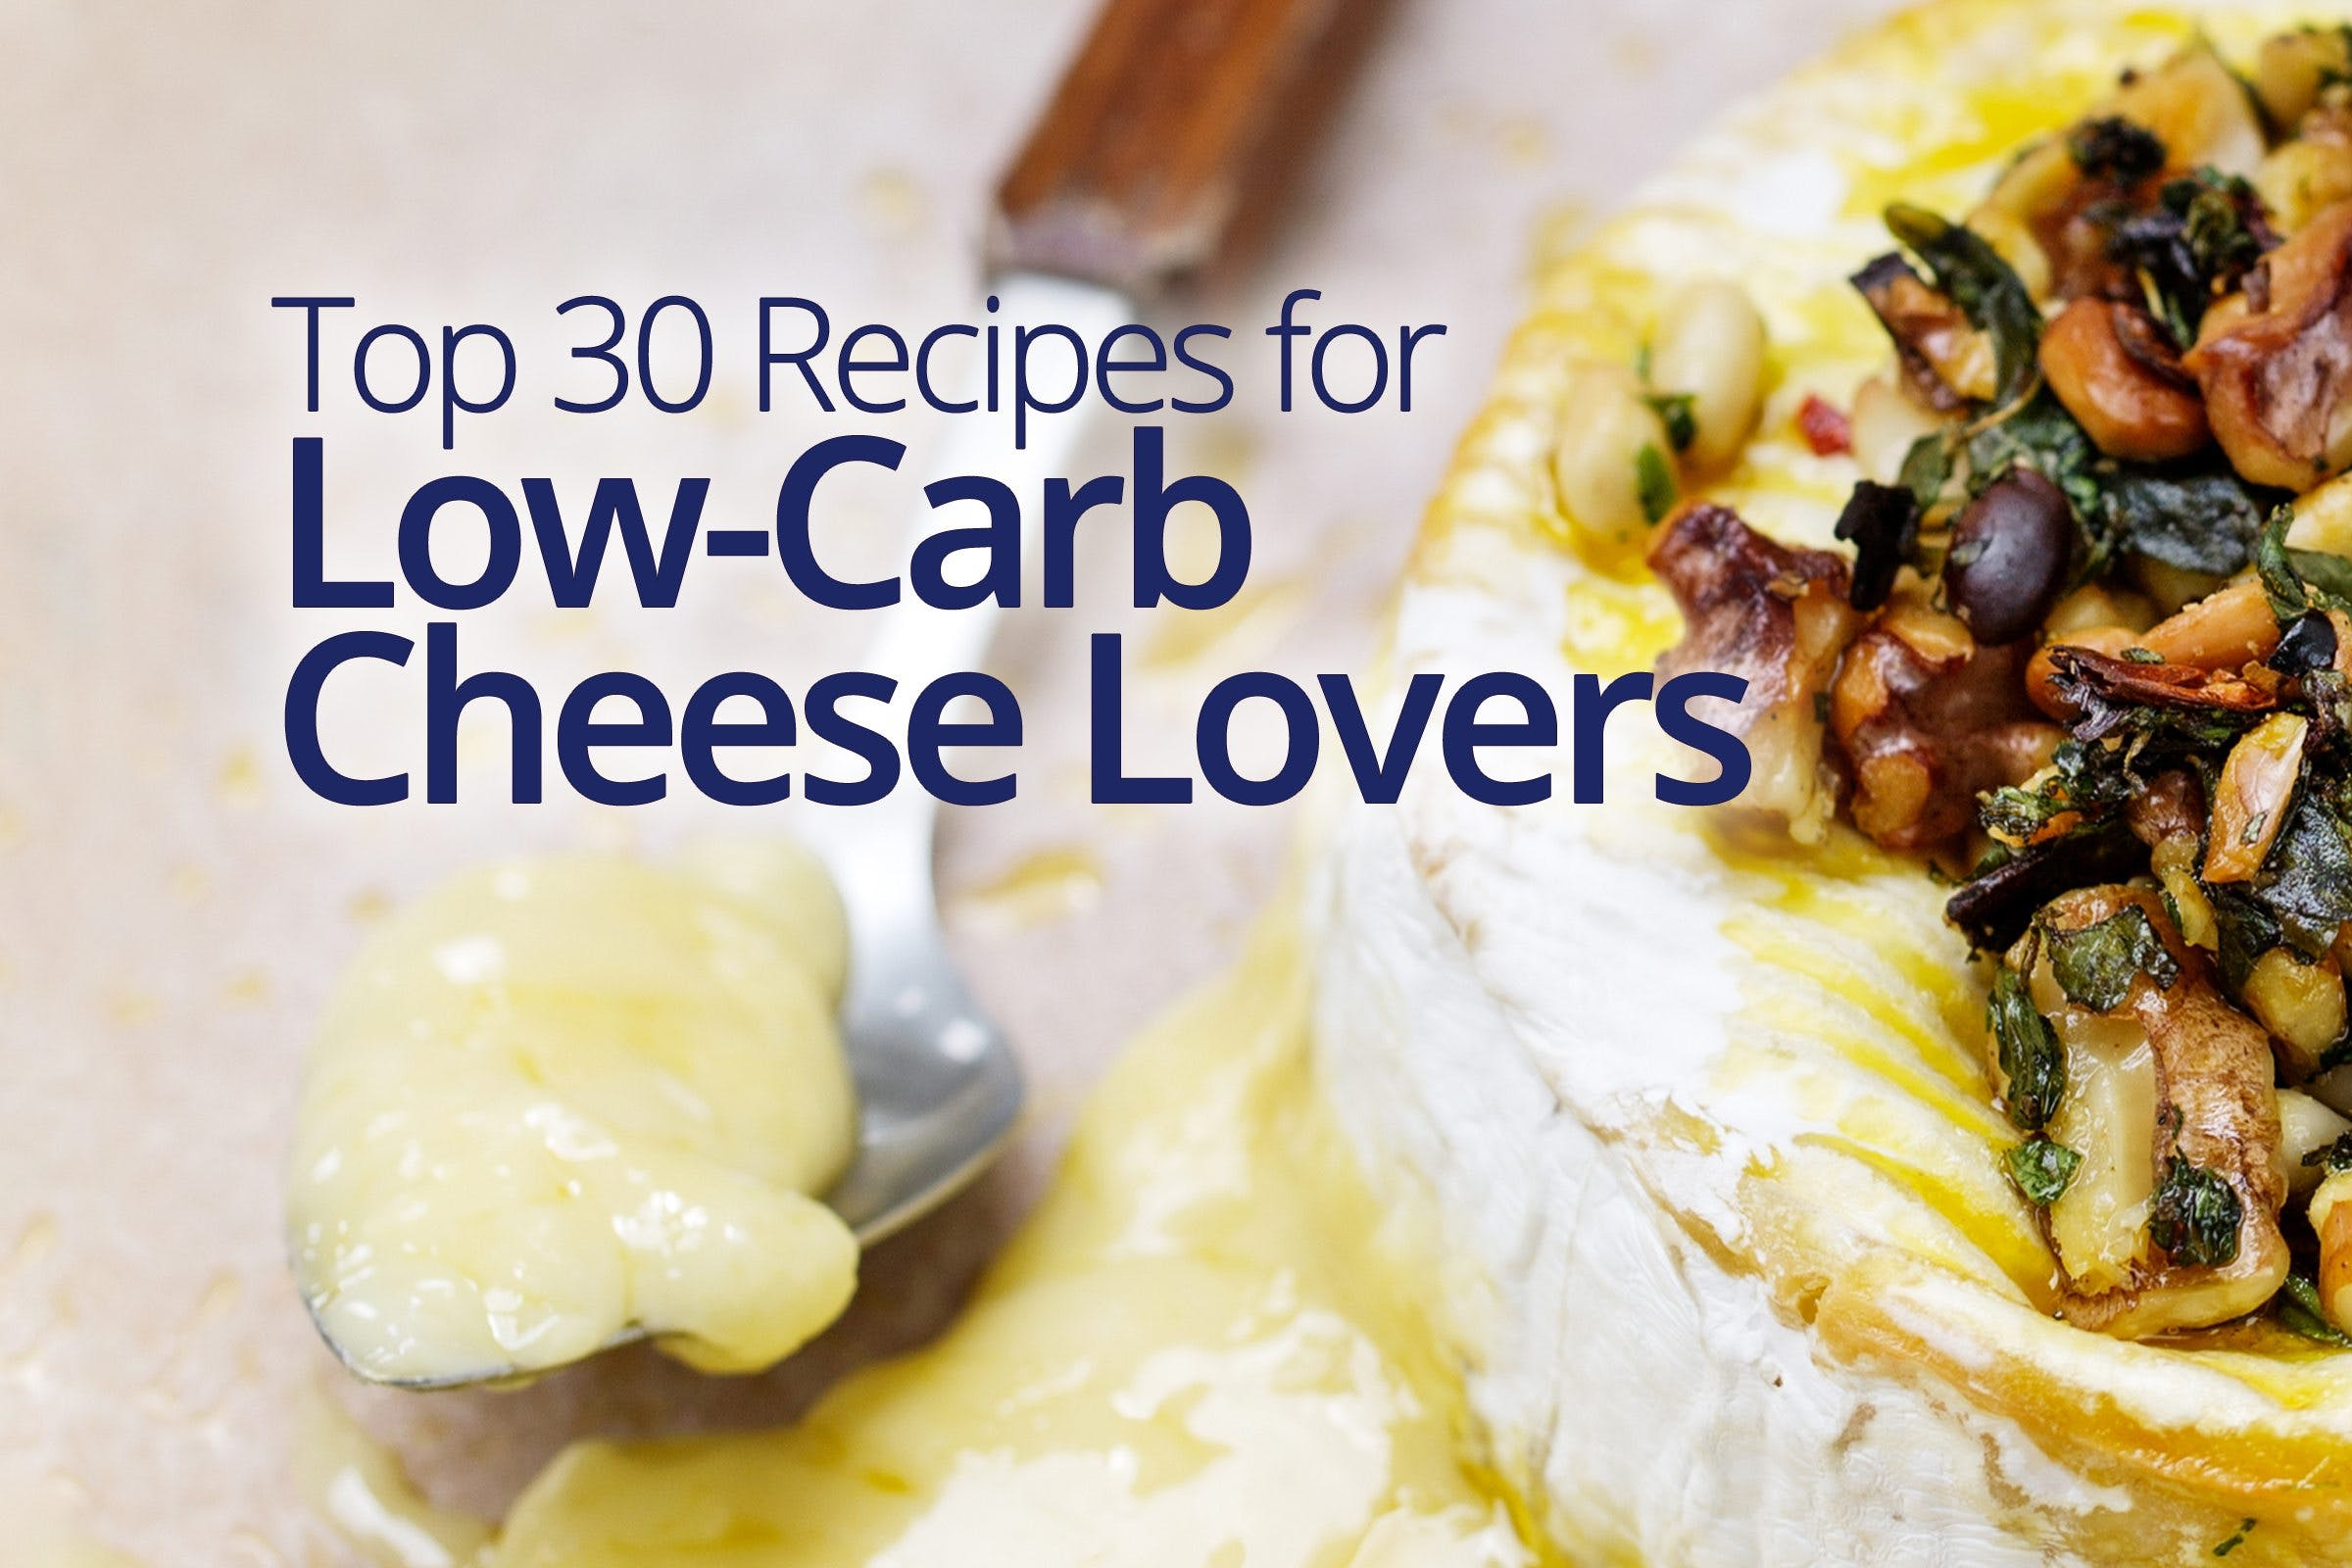 30 recipes for low-carb cheese lovers